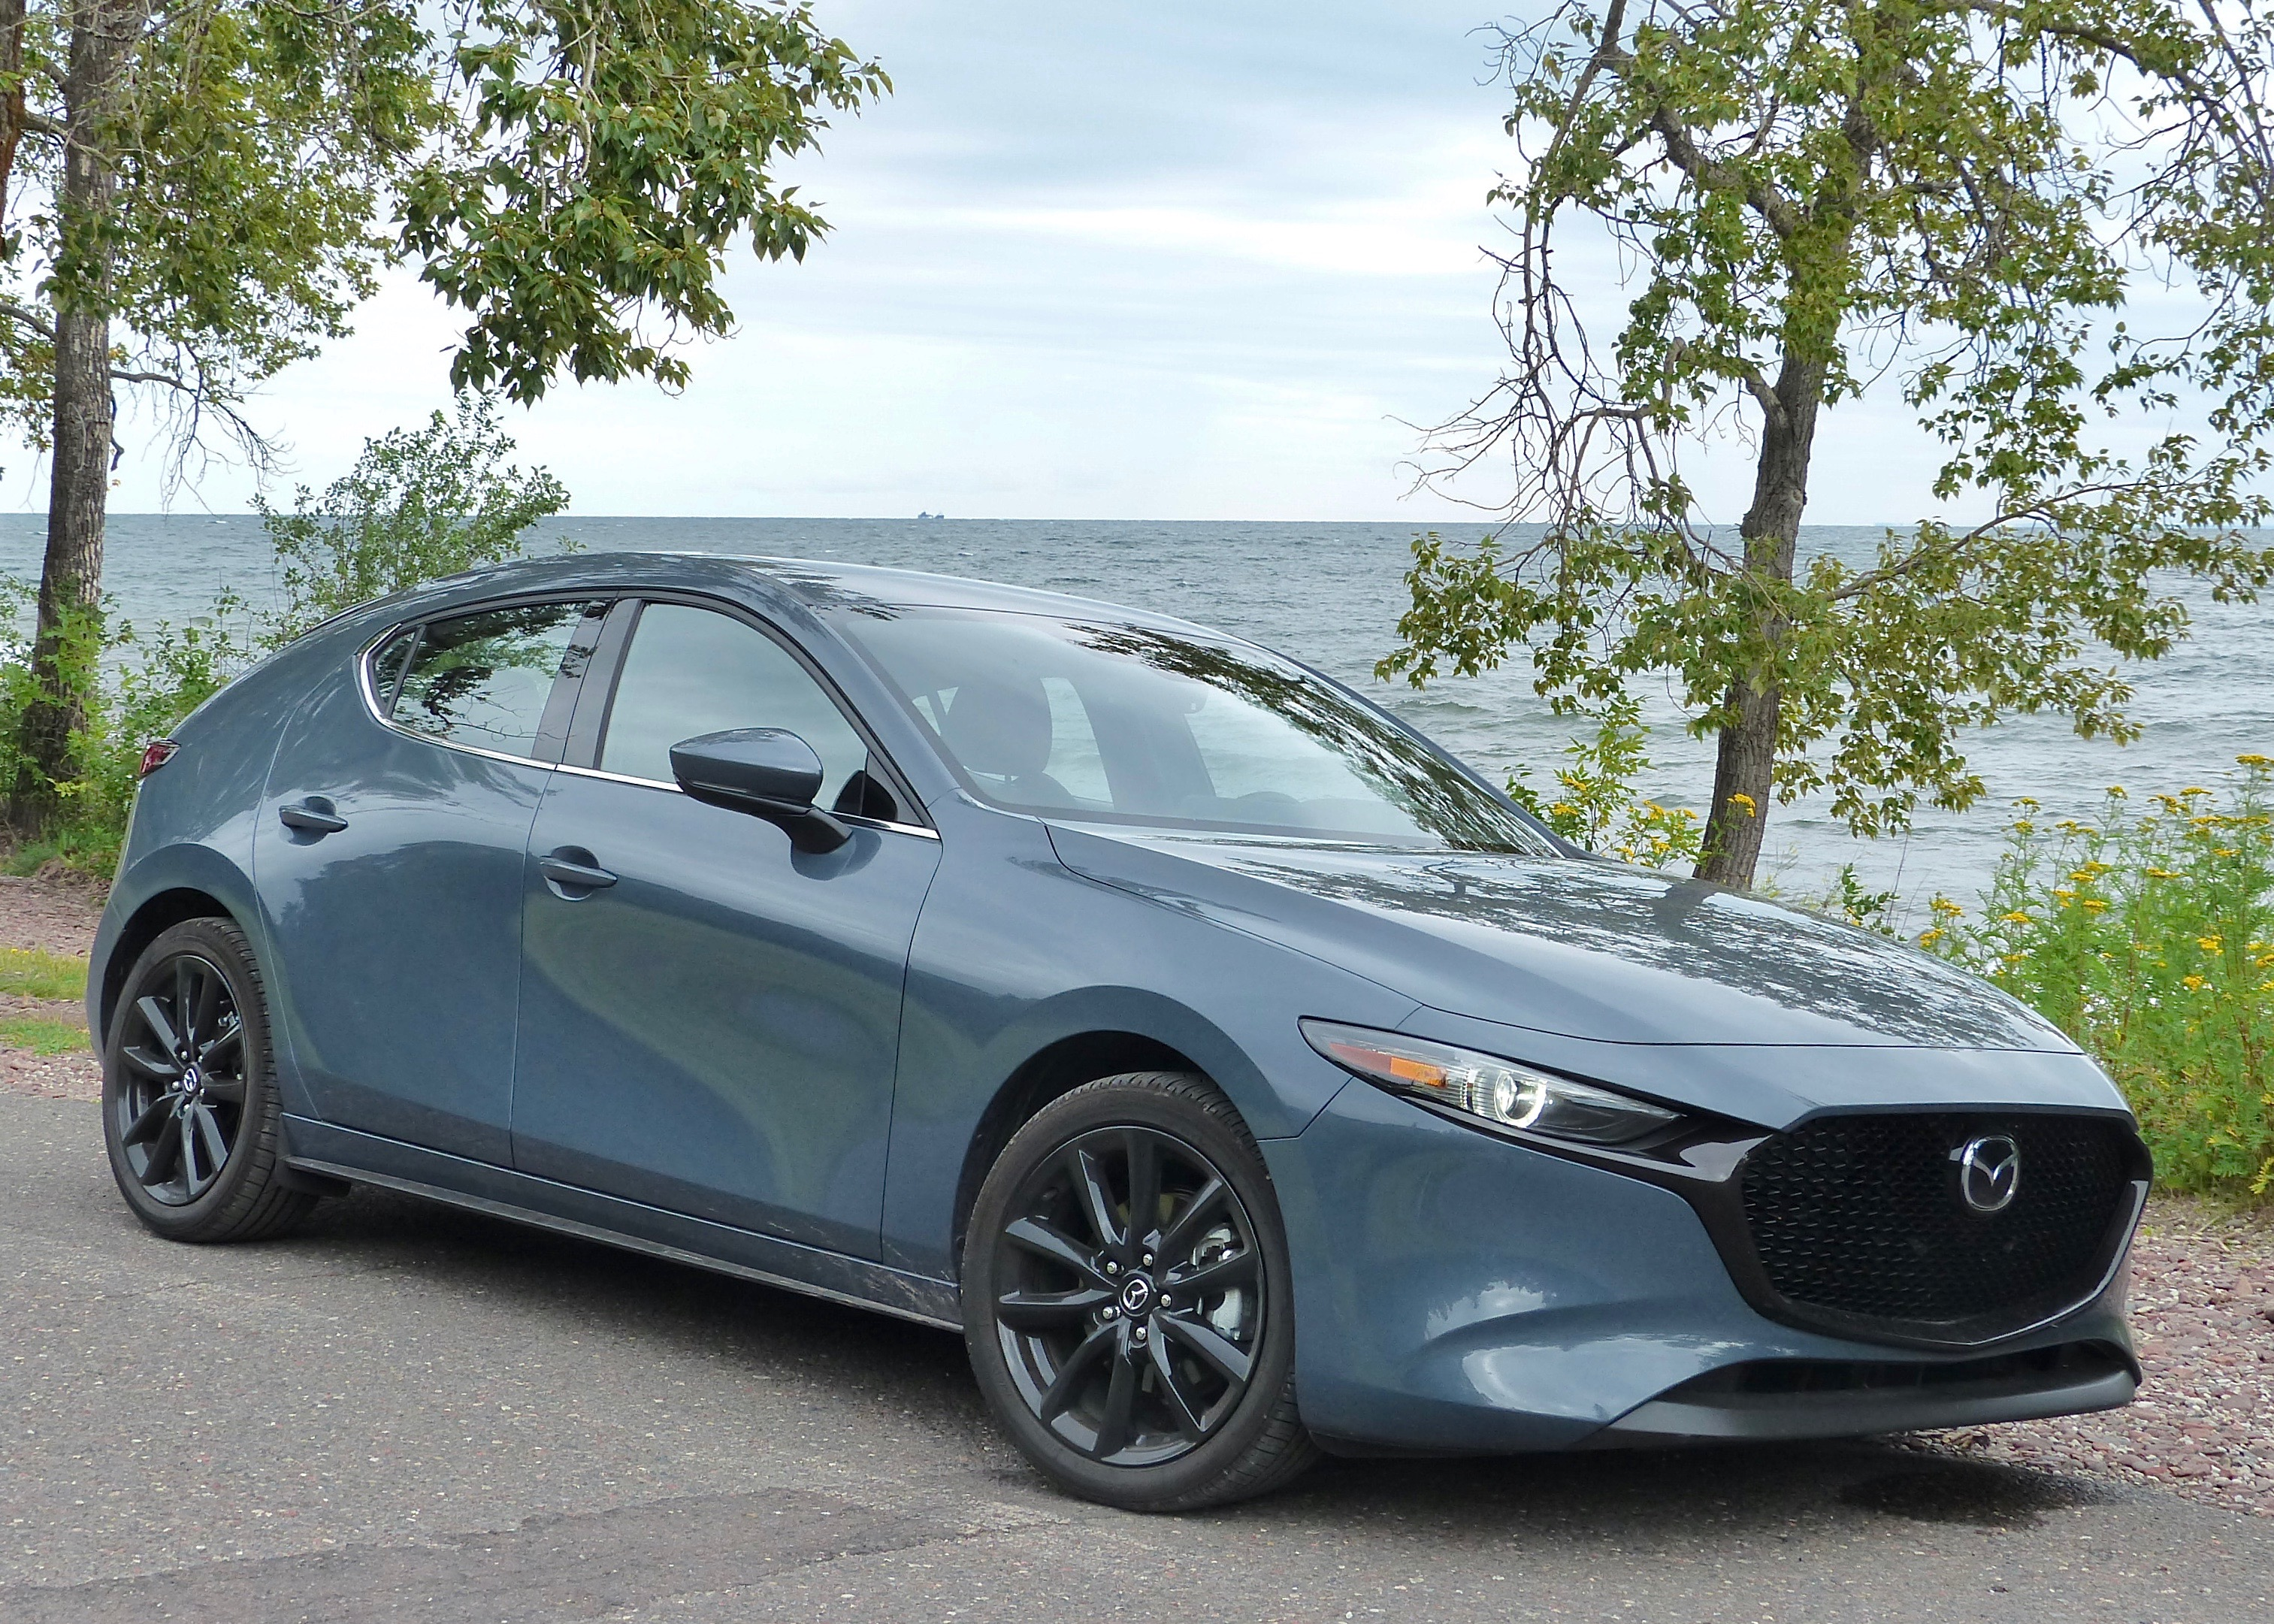 Newest Mazda3 pushes Civic, Corolla, Elantra GT, Jetta to compact challenge.